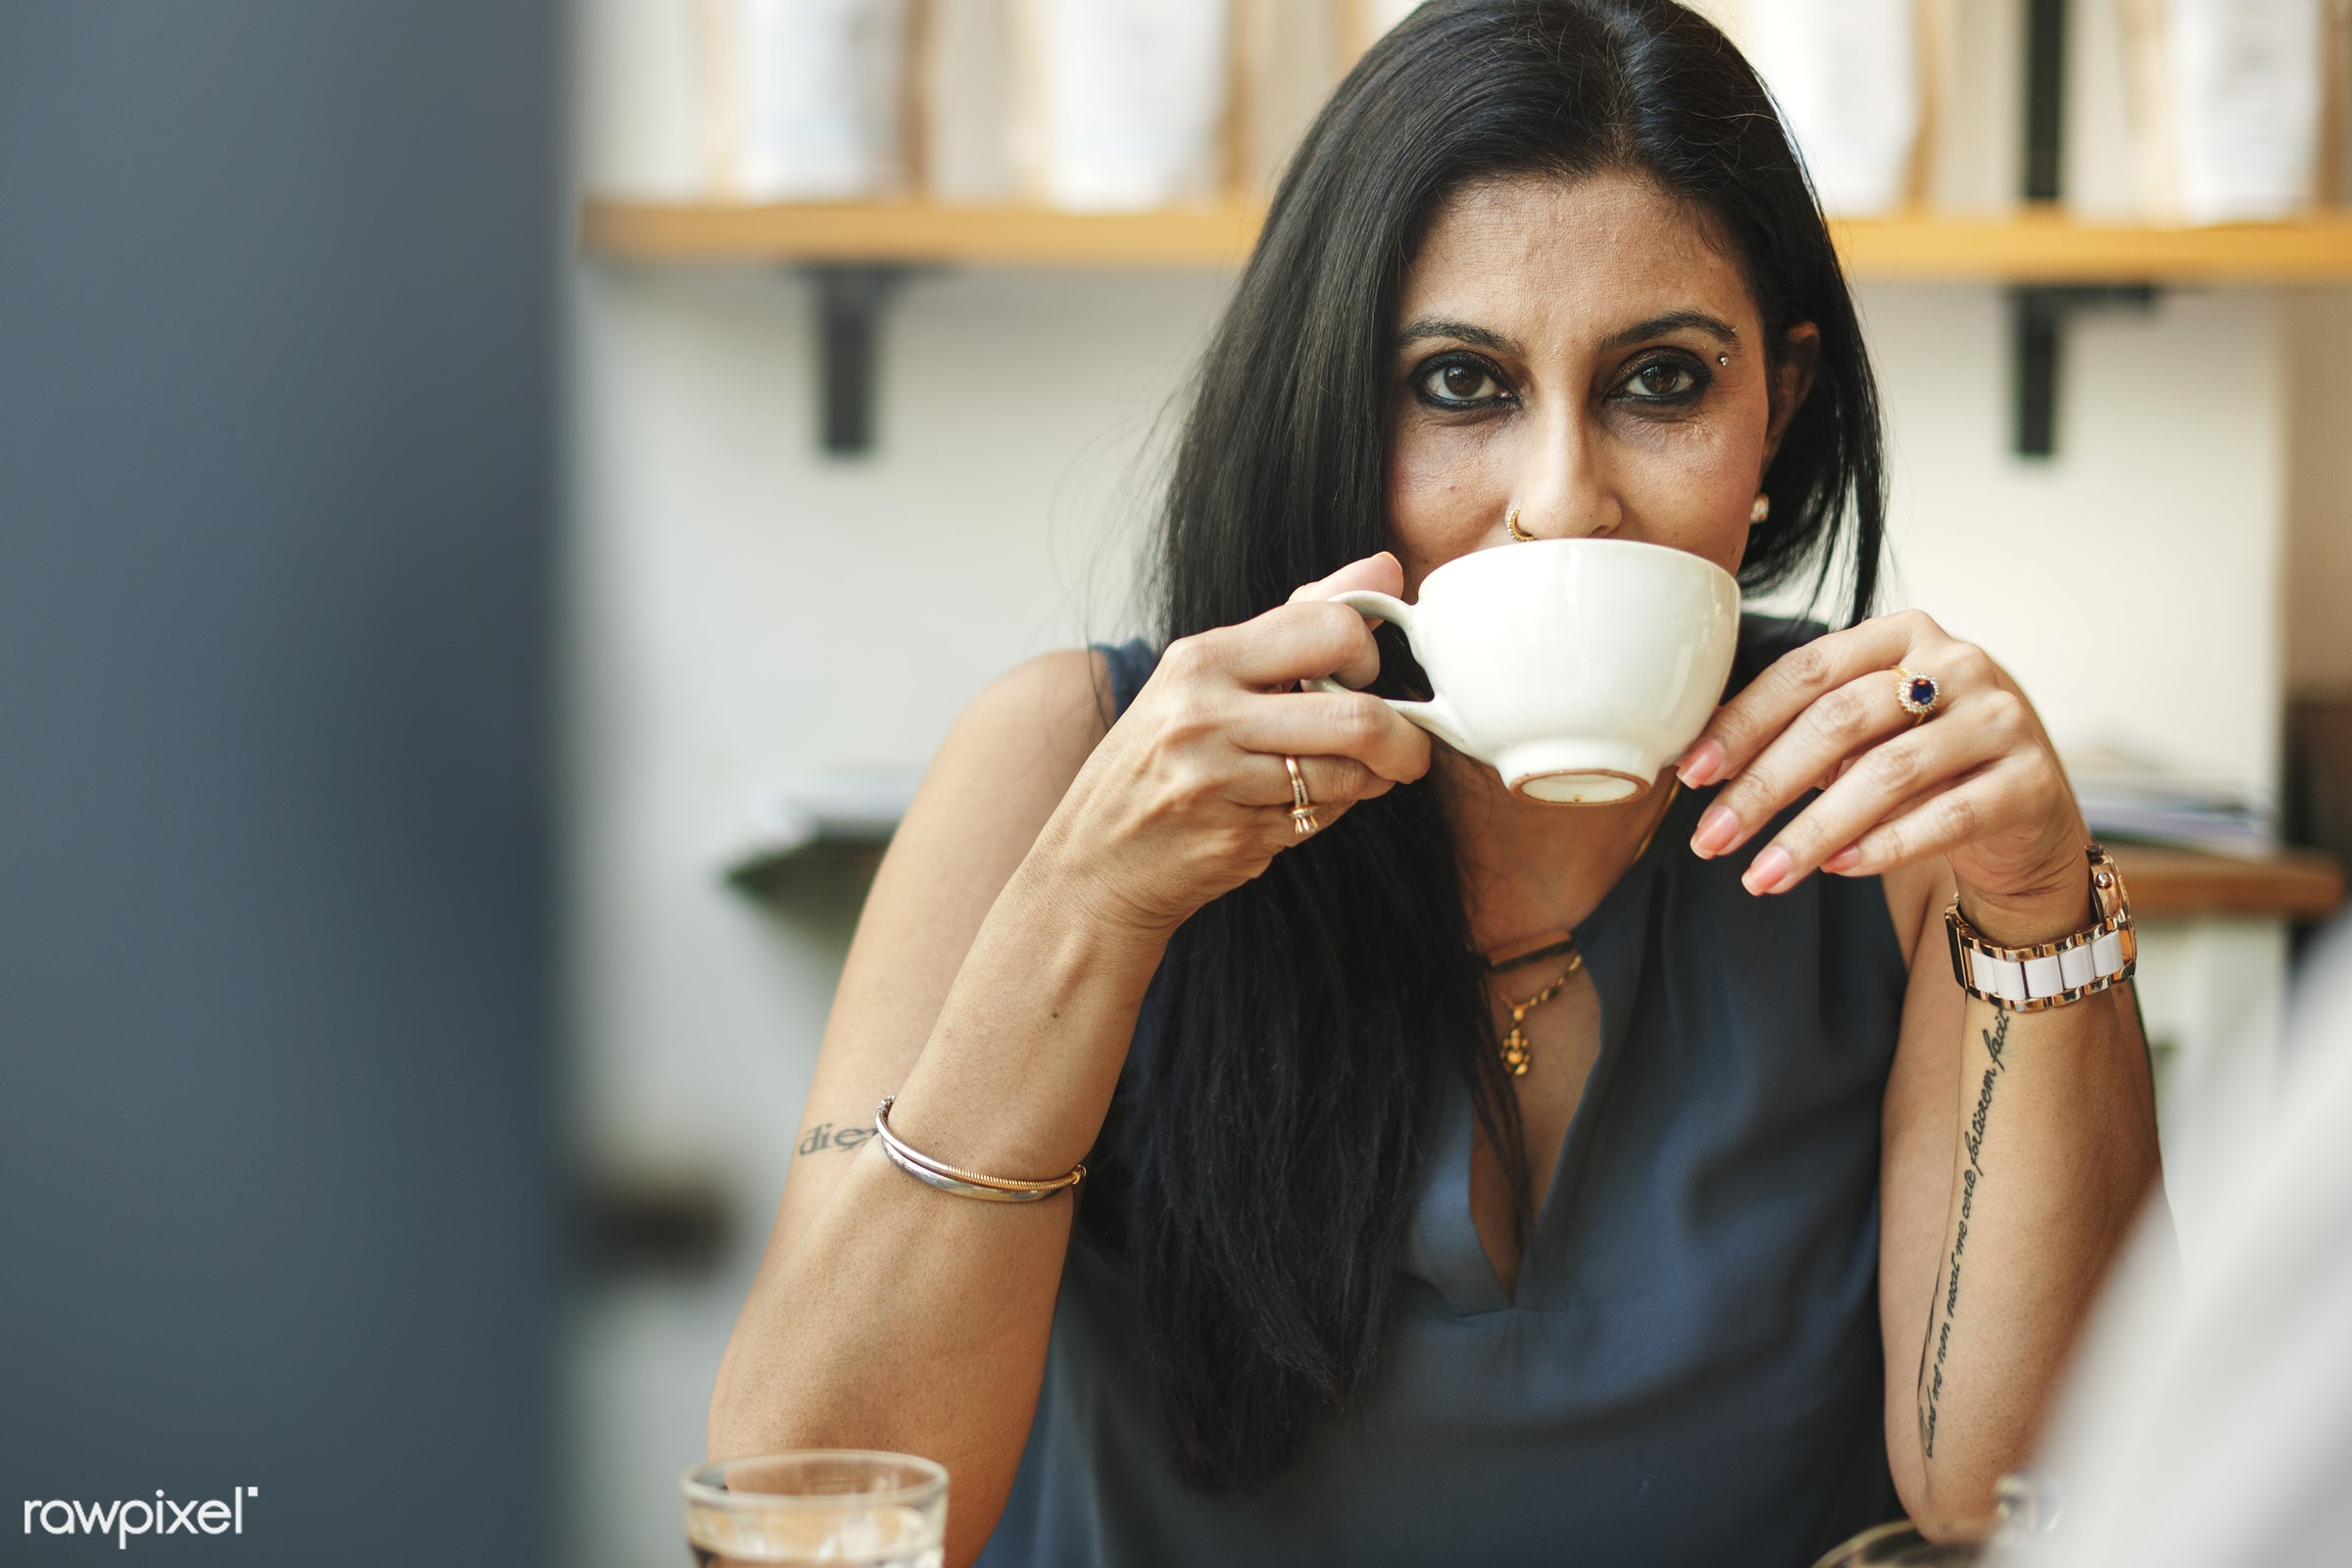 Woman Drinking Coffee Shop Relaxation Concept - alone, awake, cheerful, coffee, cup, drinking, indian, mature, morning, one...